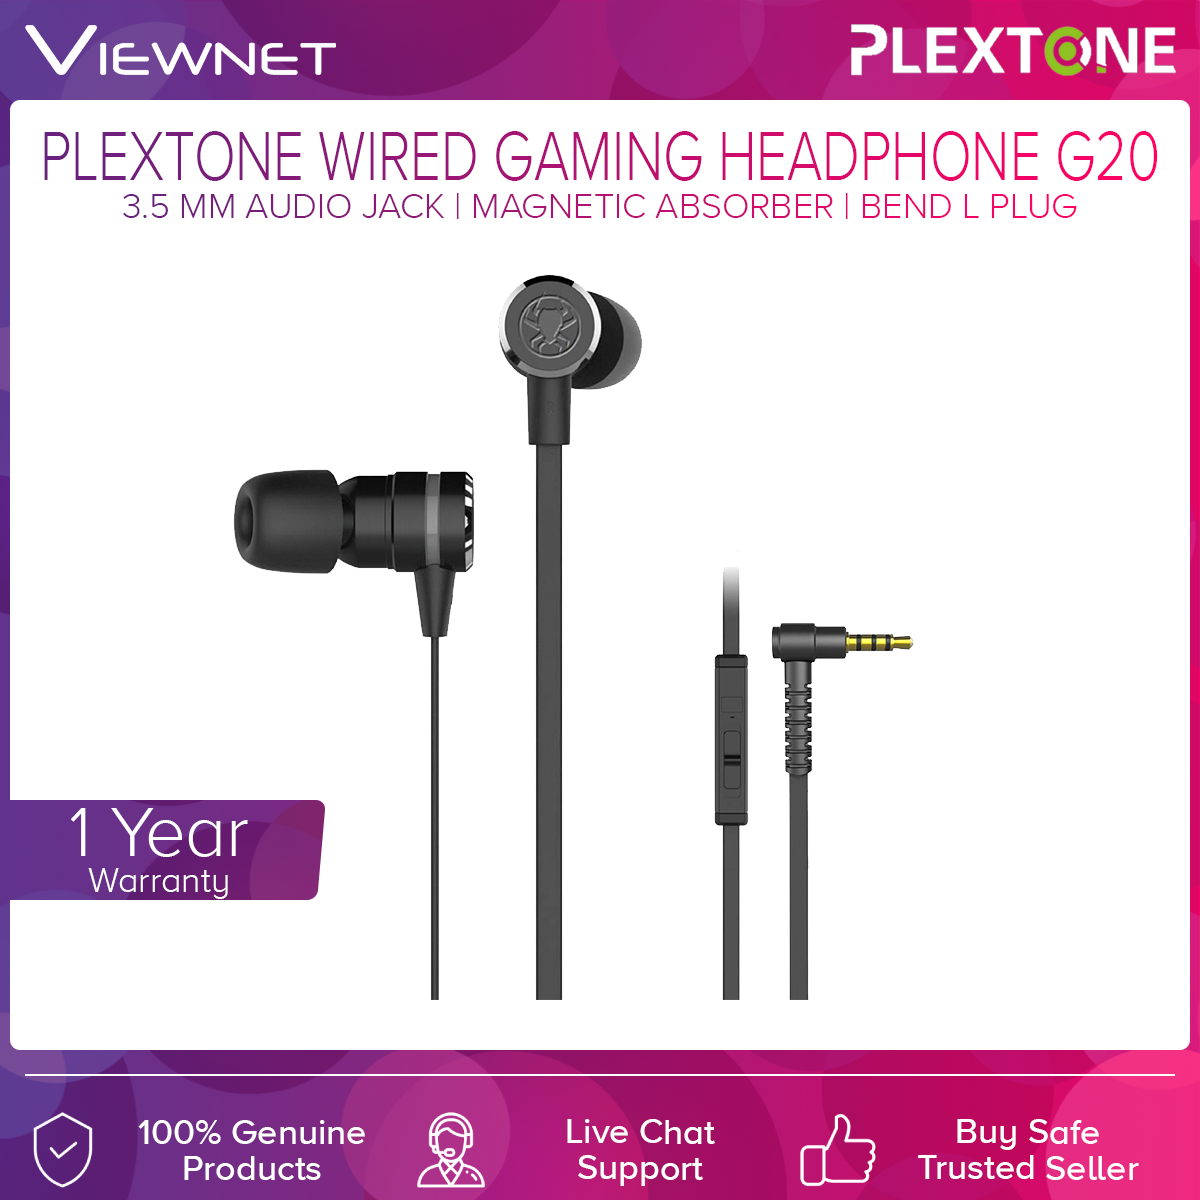 Plextone G15 3.5 MM Audio Jack Wired Gaming Headphone with Magnetic Absorber, Bend L Plug